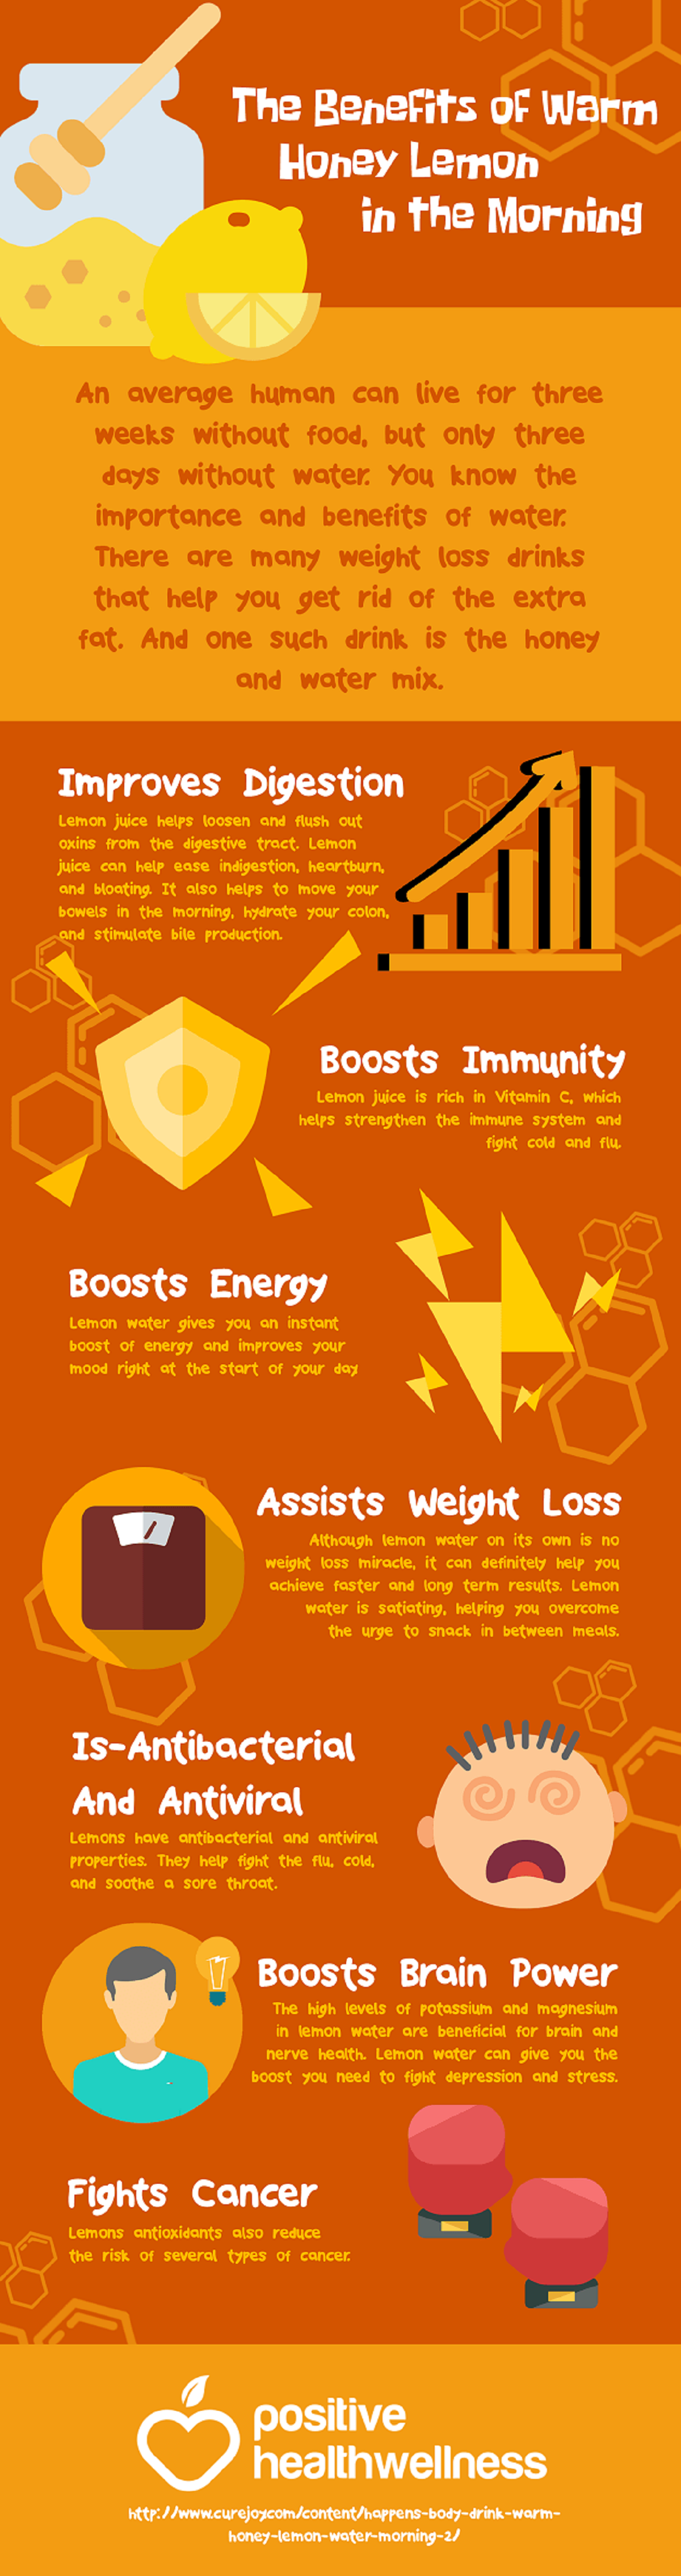 the-benefits-of-warm-honey-lemon-in-the-morning-infographic